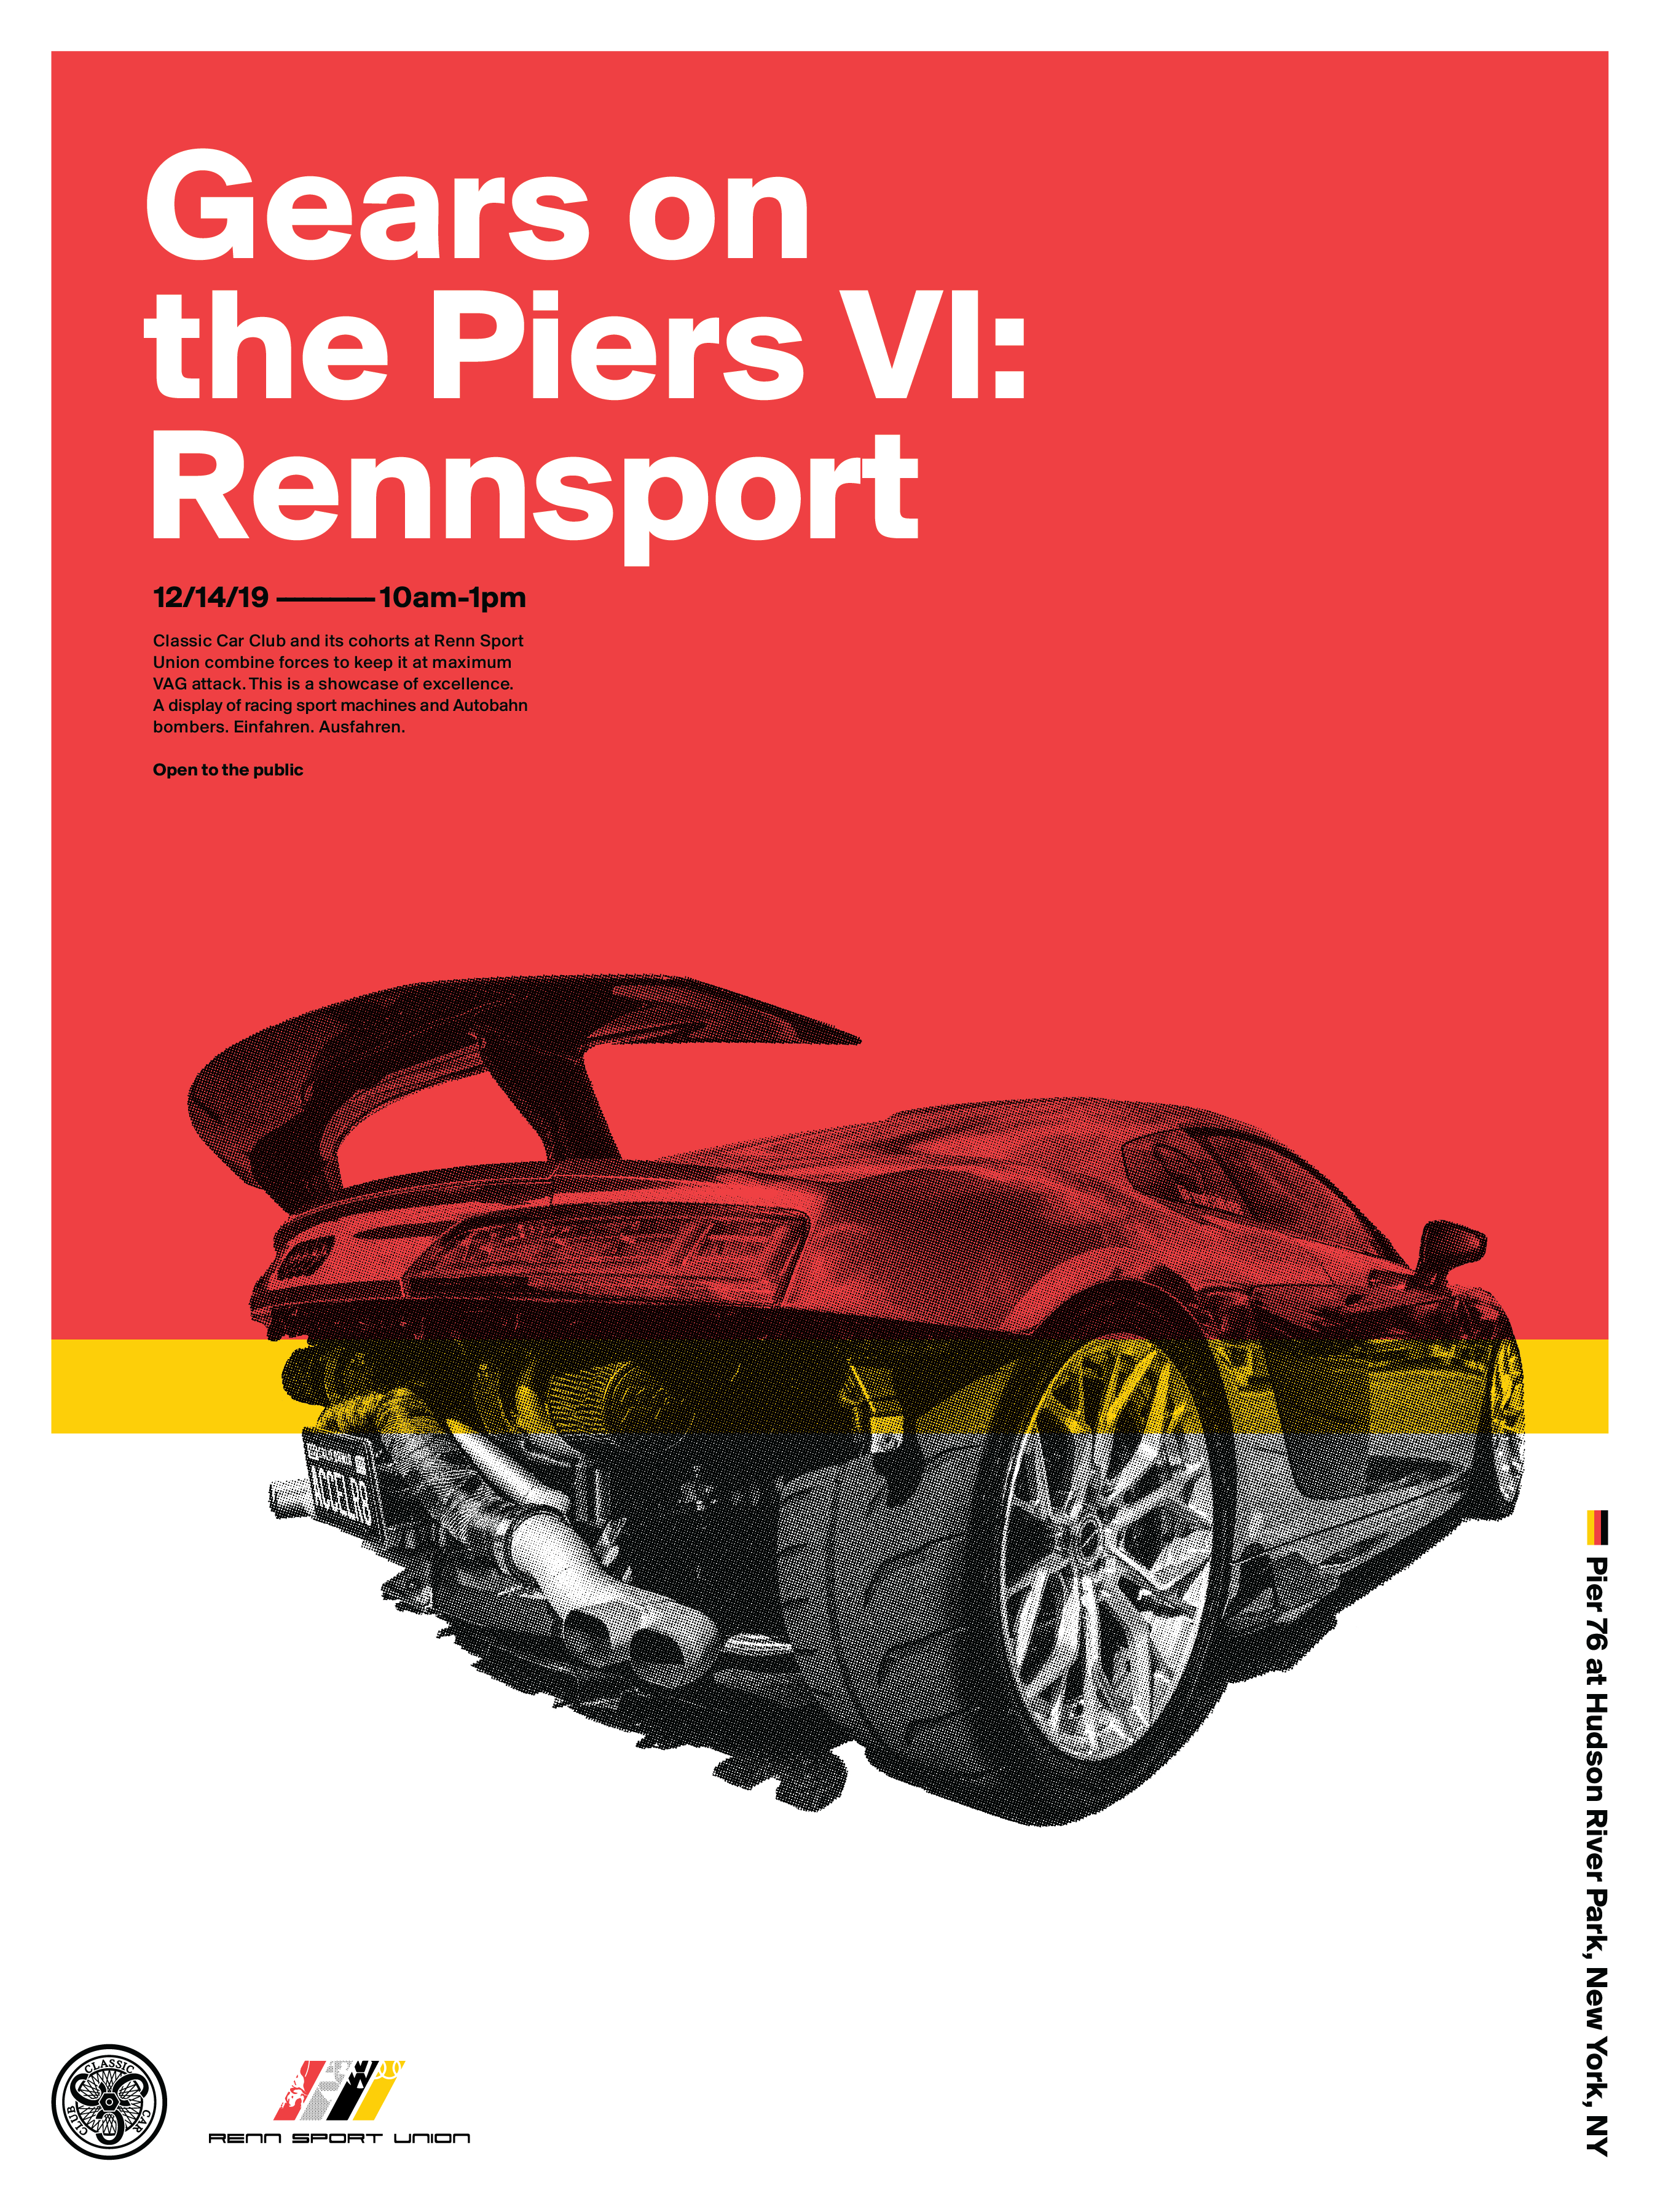 Gears on the Piers VI: Rennsport